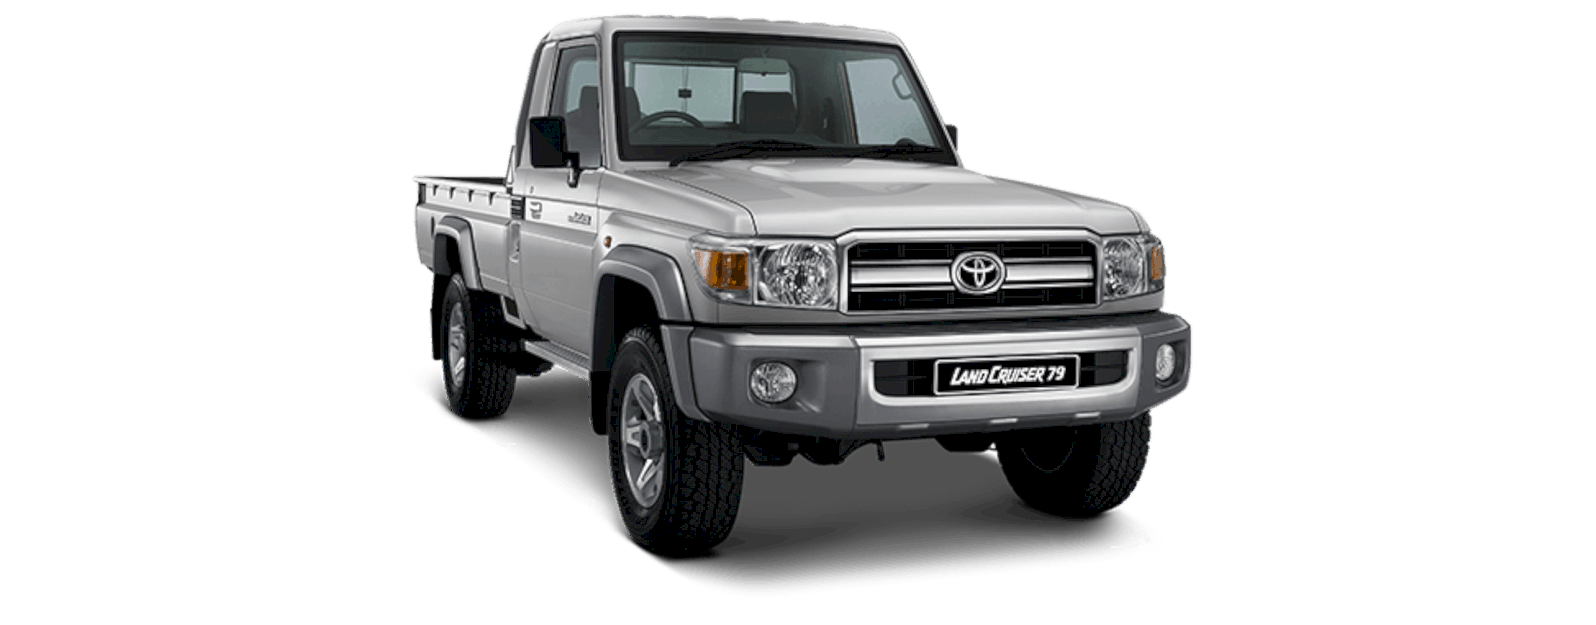 Toyota Land Cruiser 70 Series Namib 7